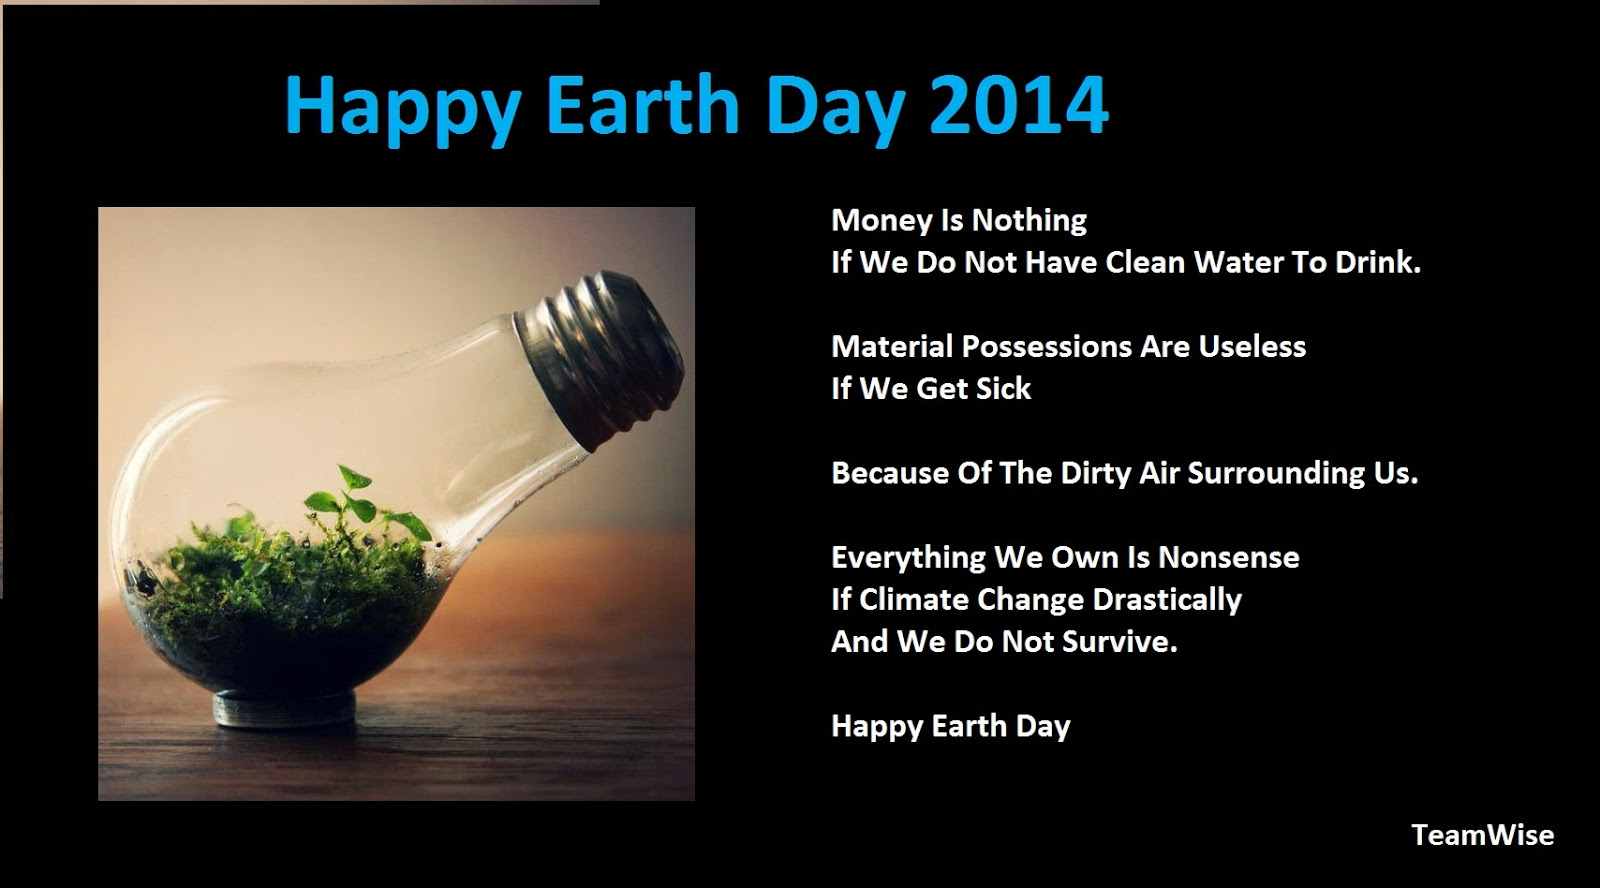 TeamWise- Happy Earth Day